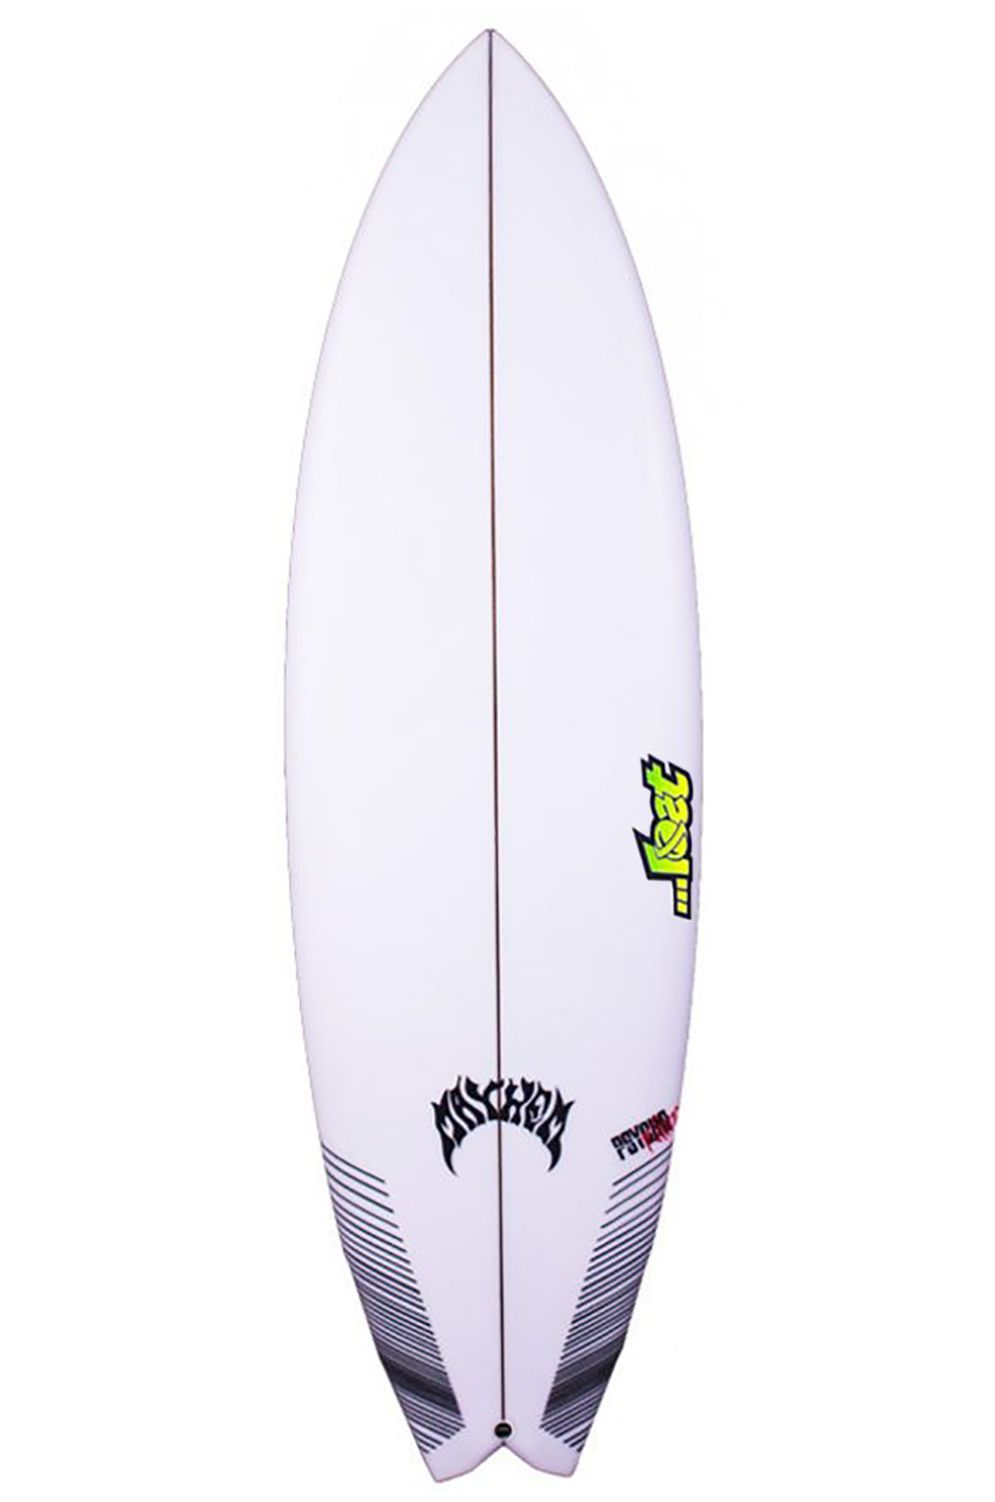 Prancha Surf Lost 5'8 PSYCHO KILLER Swallow Tail - White FCS II Multisystem 5ft8